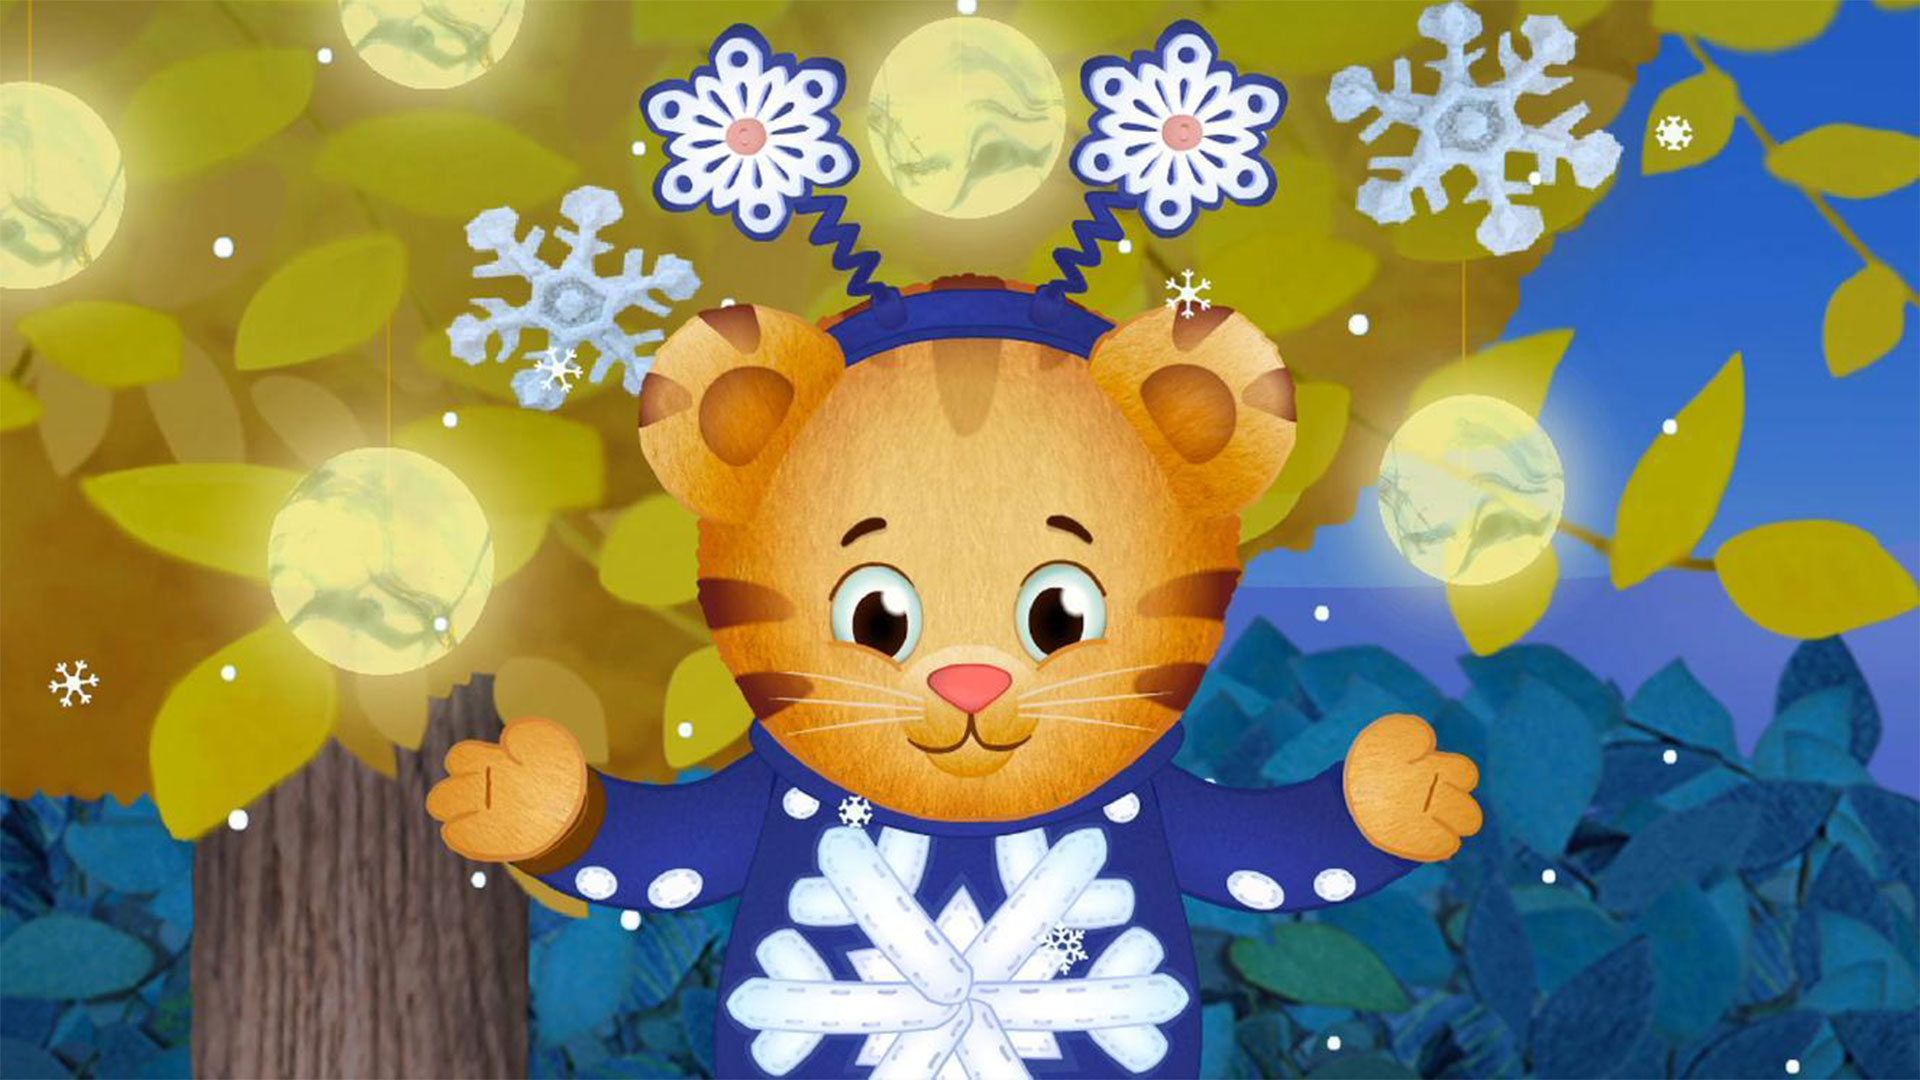 Daniel Tiger snowflake day